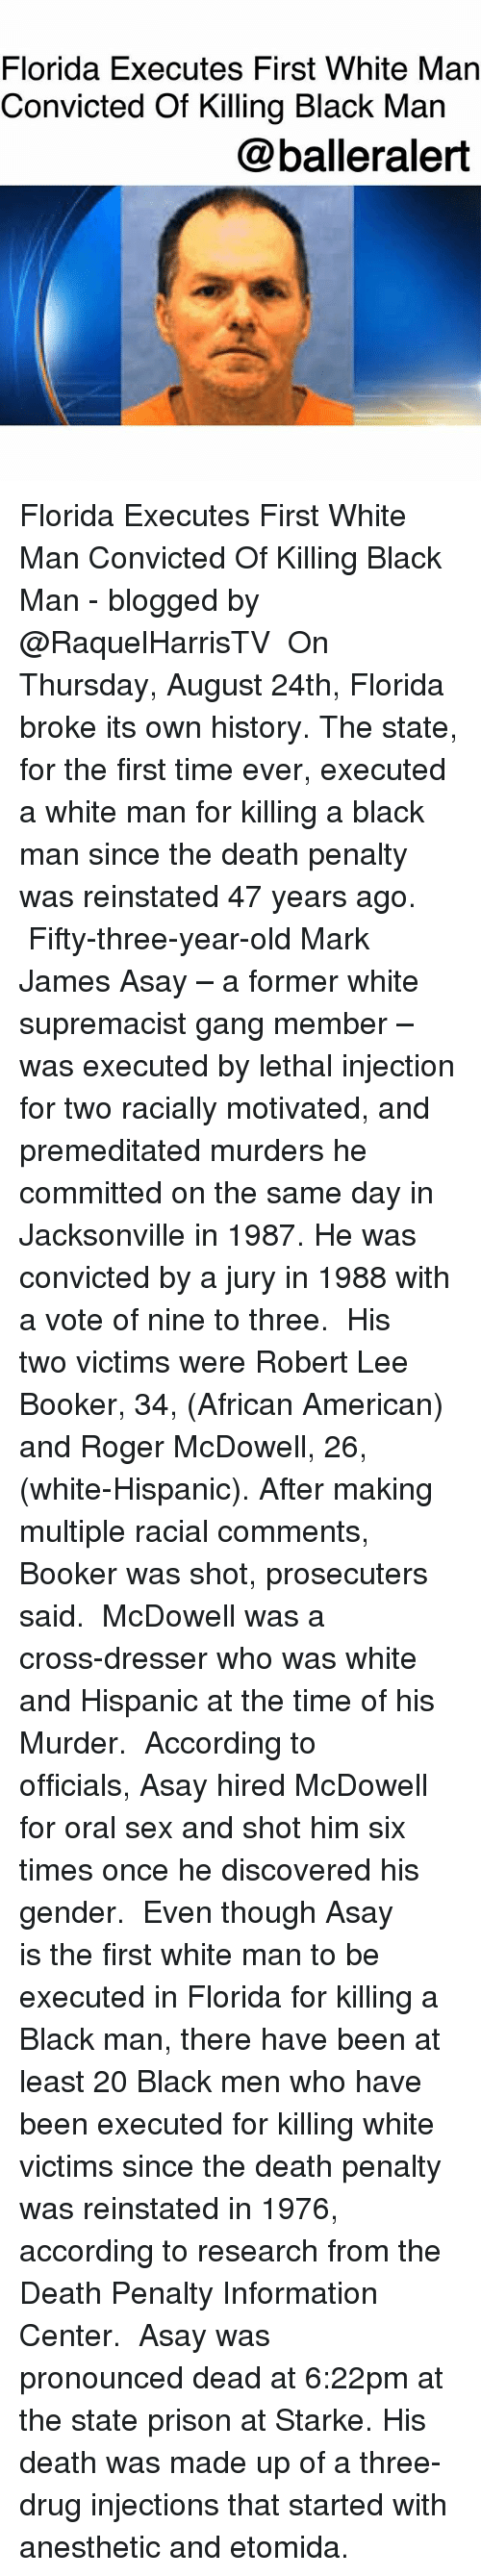 Gangly: Florida Executes First White Man  Convicted Of Killing Black Man  @balleralert Florida Executes First White Man Convicted Of Killing Black Man - blogged by @RaquelHarrisTV ⠀⠀⠀⠀⠀⠀⠀ On Thursday, August 24th, Florida broke its own history. The state, for the first time ever, executed a white man for killing a black man since the death penalty was reinstated 47 years ago. ⠀⠀⠀⠀⠀⠀⠀ Fifty-three-year-old Mark James Asay – a former white supremacist gang member – was executed by lethal injection for two racially motivated, and premeditated murders he committed on the same day in Jacksonville in 1987. He was convicted by a jury in 1988 with a vote of nine to three. ⠀⠀⠀⠀⠀⠀⠀ His two victims were Robert Lee Booker, 34, (African American) and Roger McDowell, 26, (white-Hispanic). After making multiple racial comments, Booker was shot, prosecuters said. ⠀⠀⠀⠀⠀⠀⠀ McDowell was a cross-dresser who was white and Hispanic at the time of his Murder. ⠀⠀⠀⠀⠀⠀⠀ According to officials, Asay hired McDowell for oral sex and shot him six times once he discovered his gender. ⠀⠀⠀⠀⠀⠀⠀ Even though Asay is the first white man to be executed in Florida for killing a Black man, there have been at least 20 Black men who have been executed for killing white victims since the death penalty was reinstated in 1976, according to research from the Death Penalty Information Center. ⠀⠀⠀⠀⠀⠀⠀ Asay was pronounced dead at 6:22pm at the state prison at Starke. His death was made up of a three-drug injections that started with anesthetic and etomida.